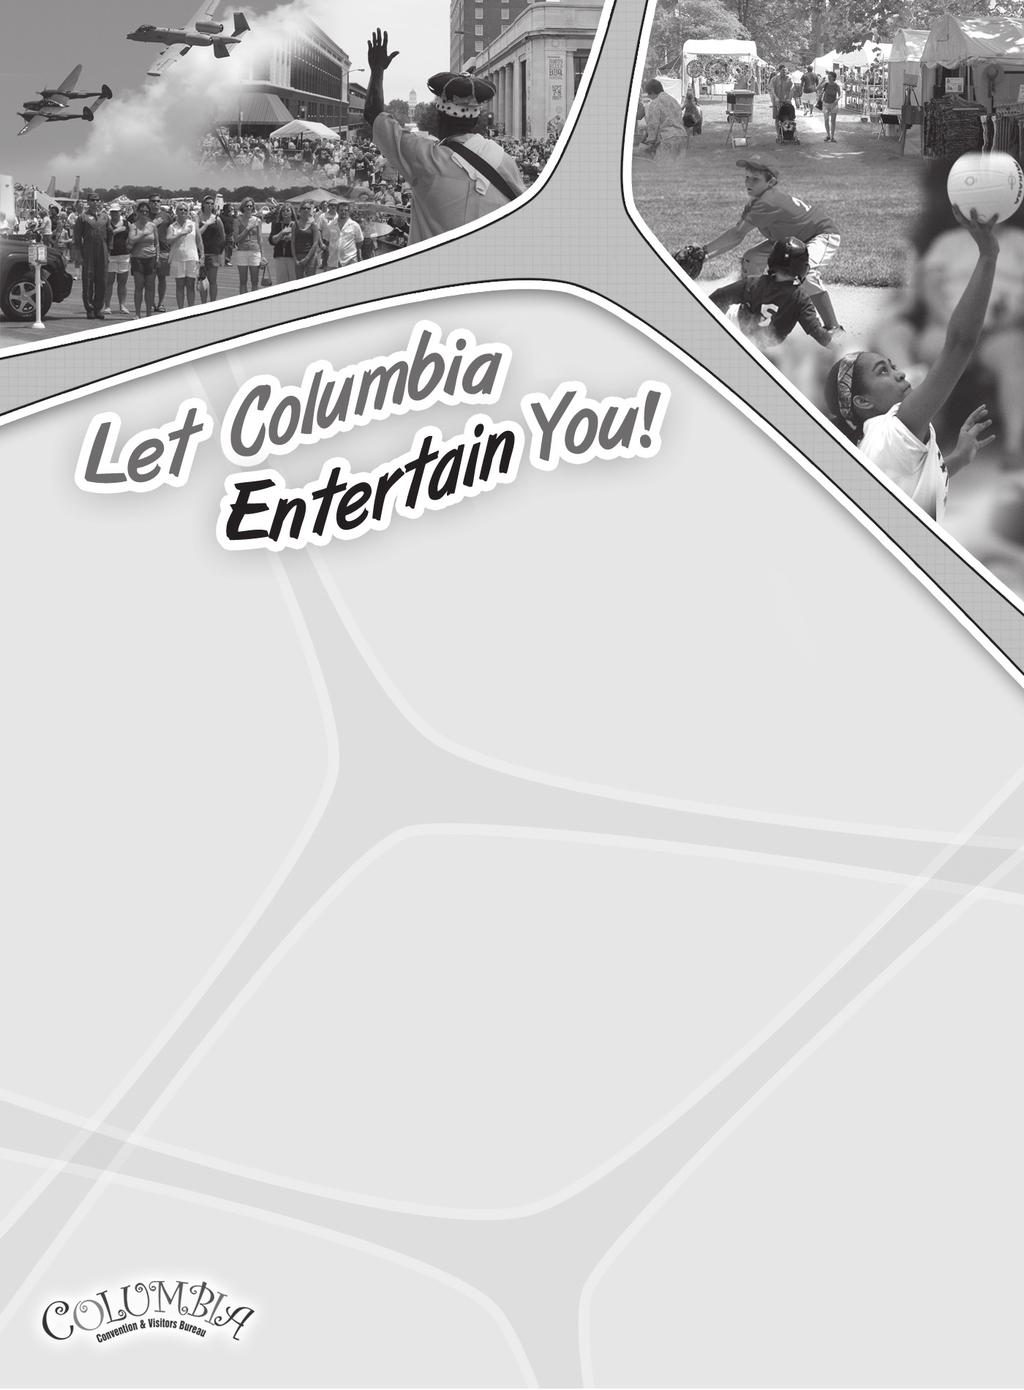 Columbia hosts a variety of special events throughout the year from street festivals and art shows to major concerts and sports venues. Make plans now to catch these exciting events.